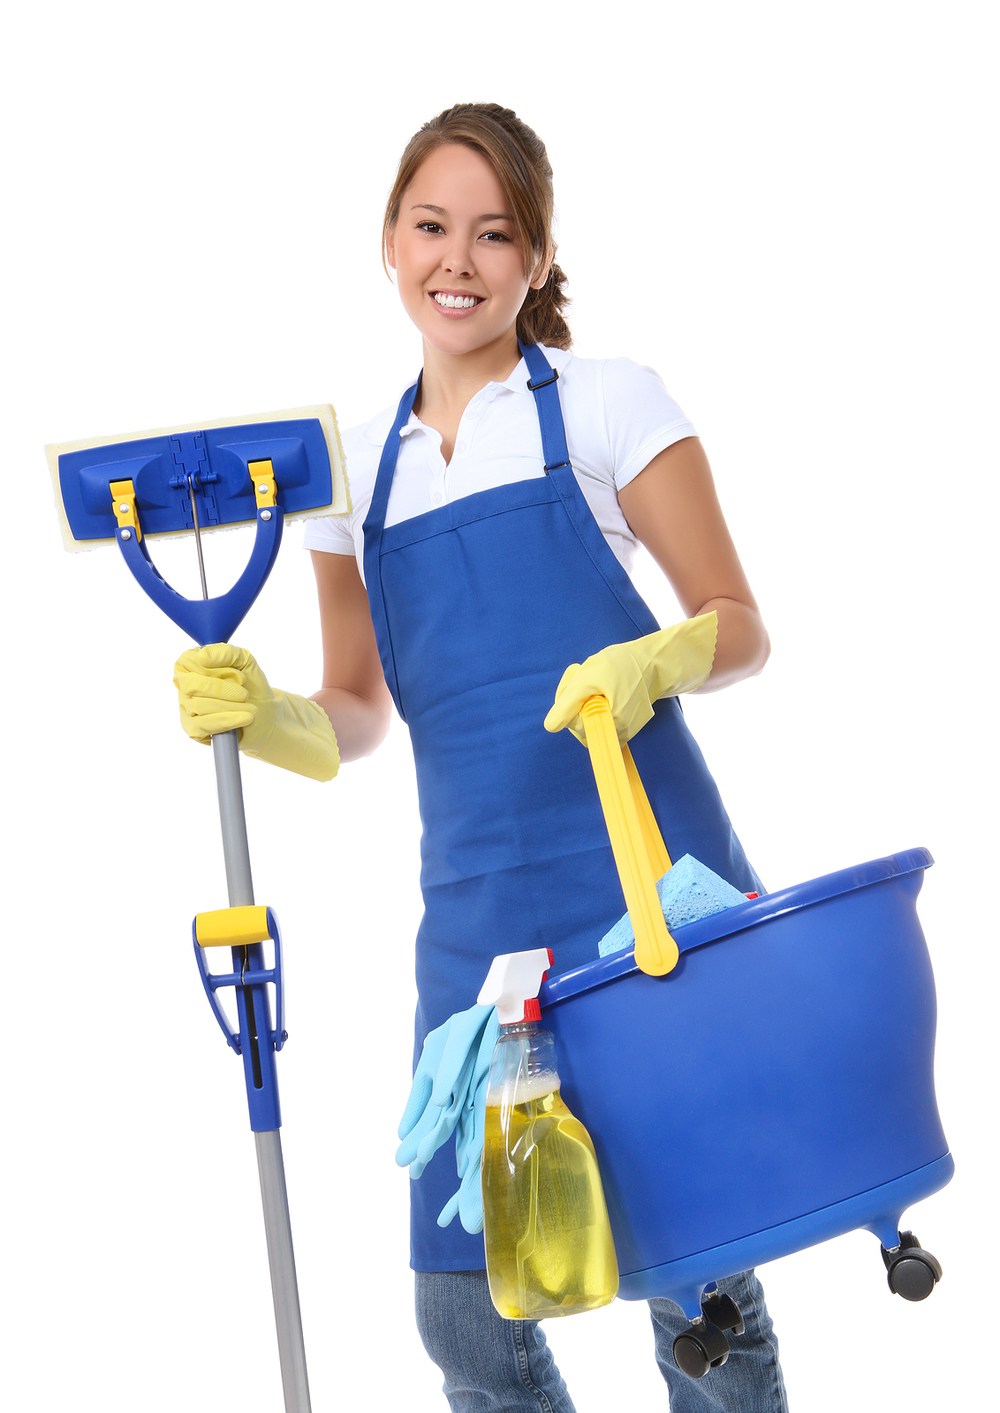 cleaner-in-leeds-with-mop.jpg